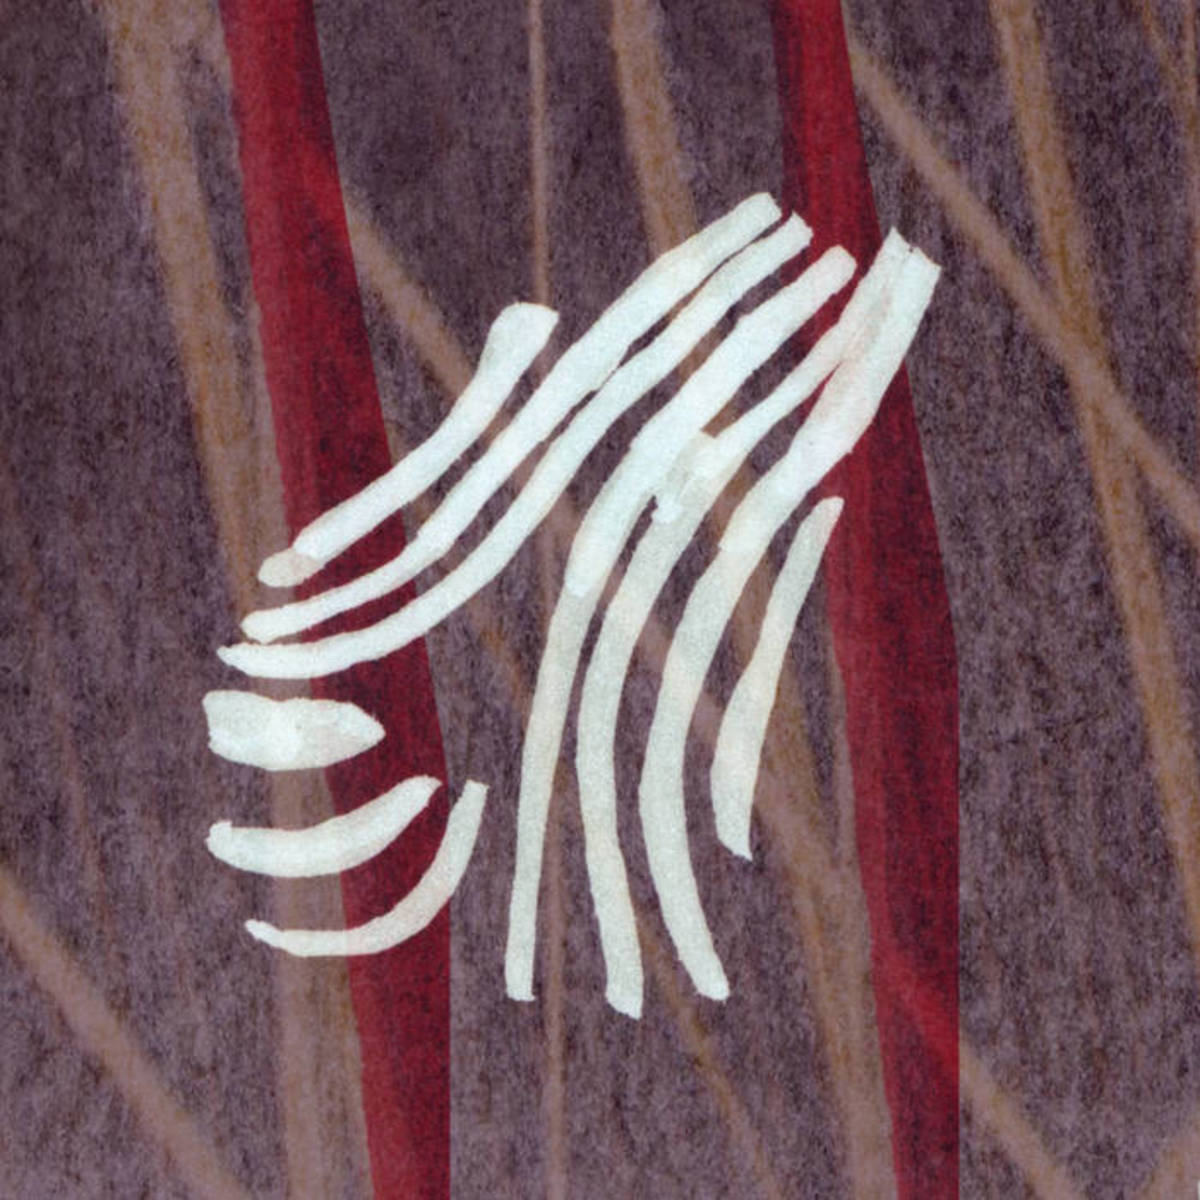 synth-single-review-rope-dancer-by-lunch-on-mars